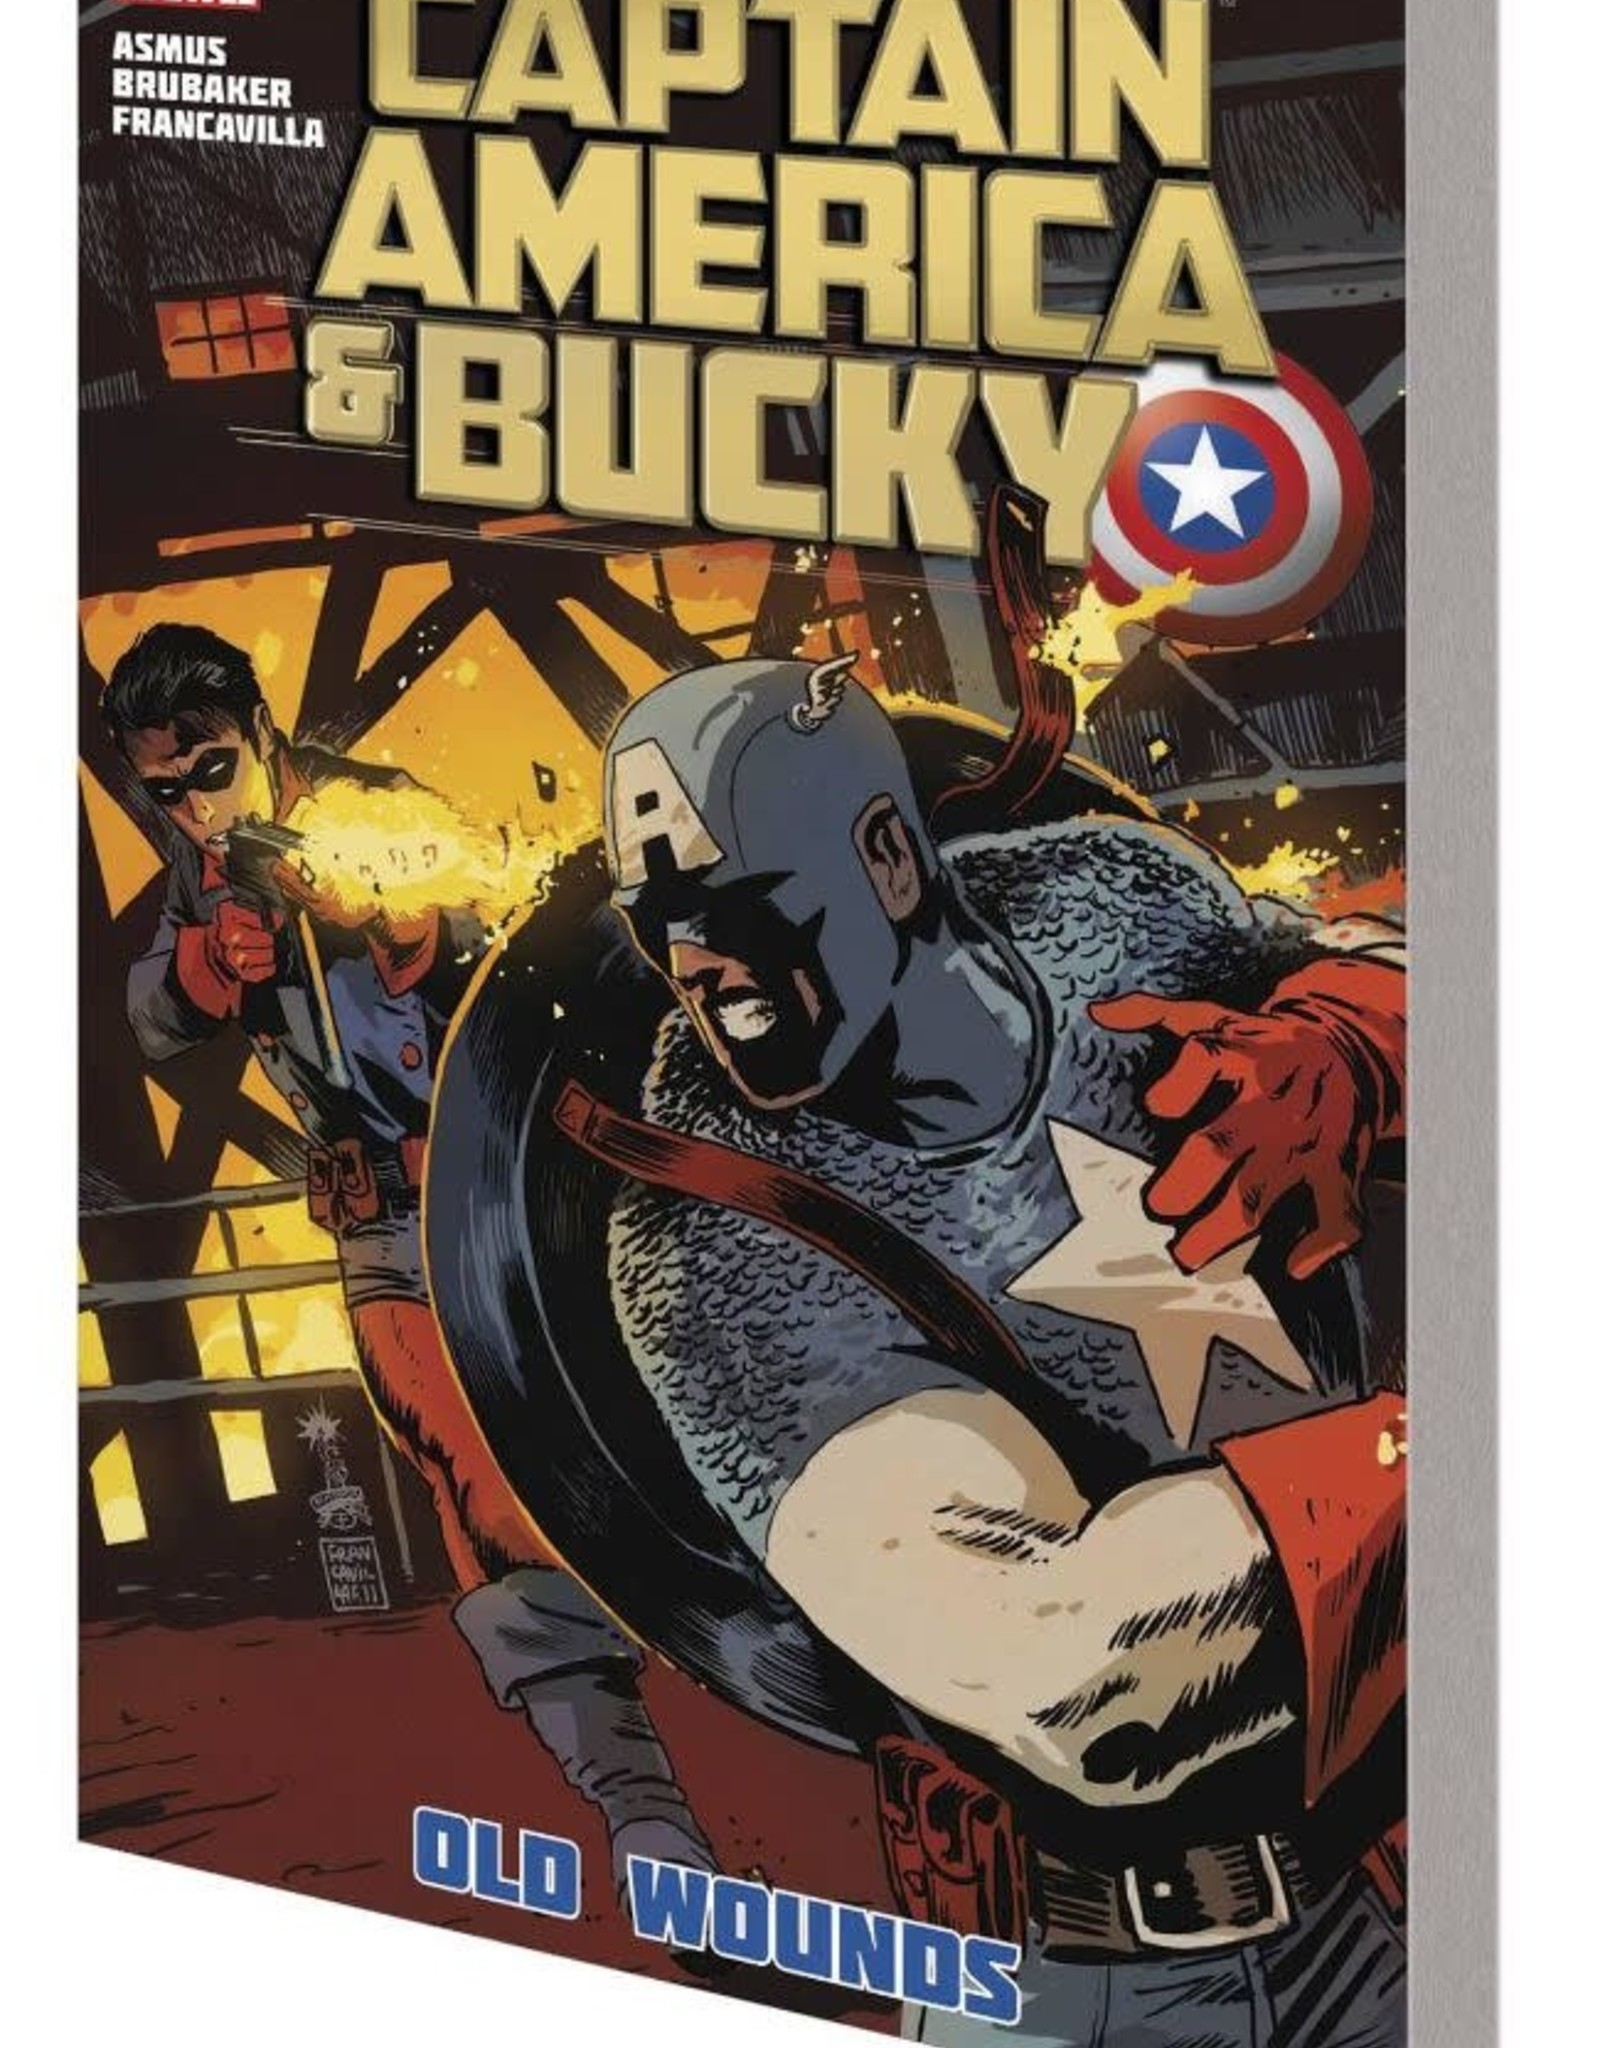 Marvel Comics Captain America & Bucky: Old Wounds TP